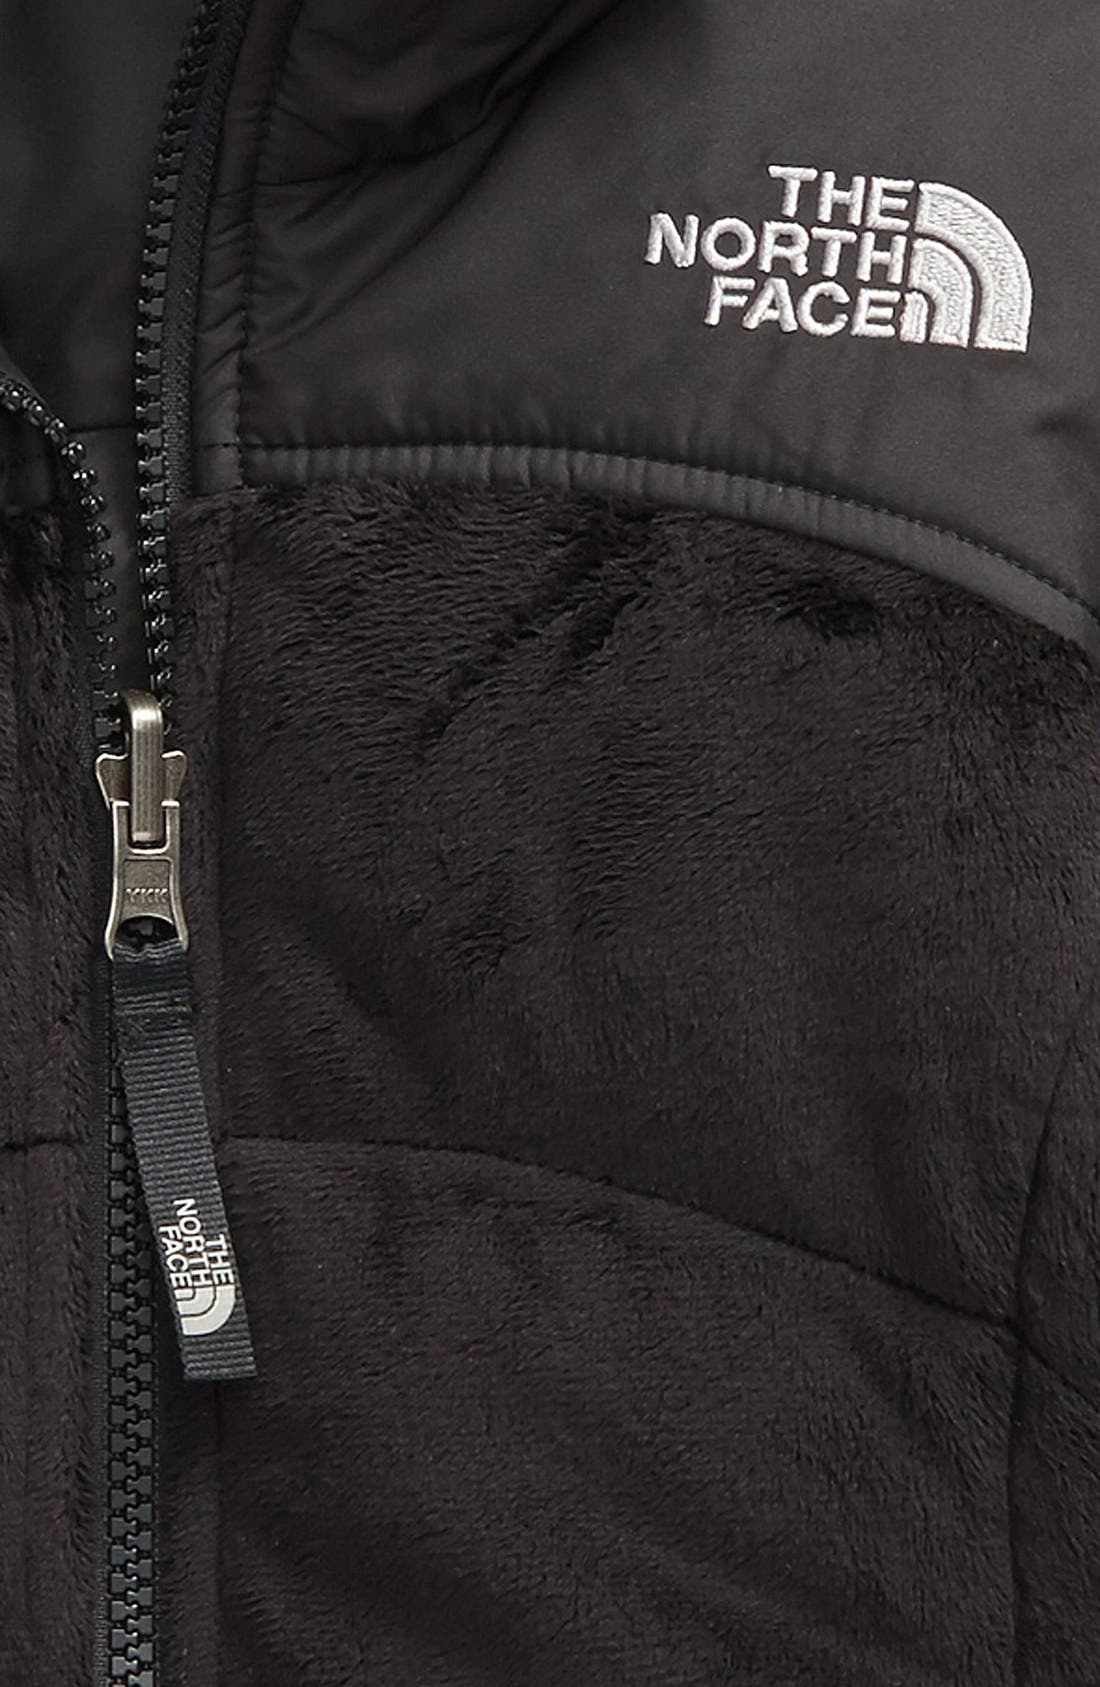 THE NORTH FACE,                             'Perseus' Water Repellent Heatseeker<sup>™</sup> Insulated Hooded Reversible Jacket,                             Alternate thumbnail 3, color,                             001